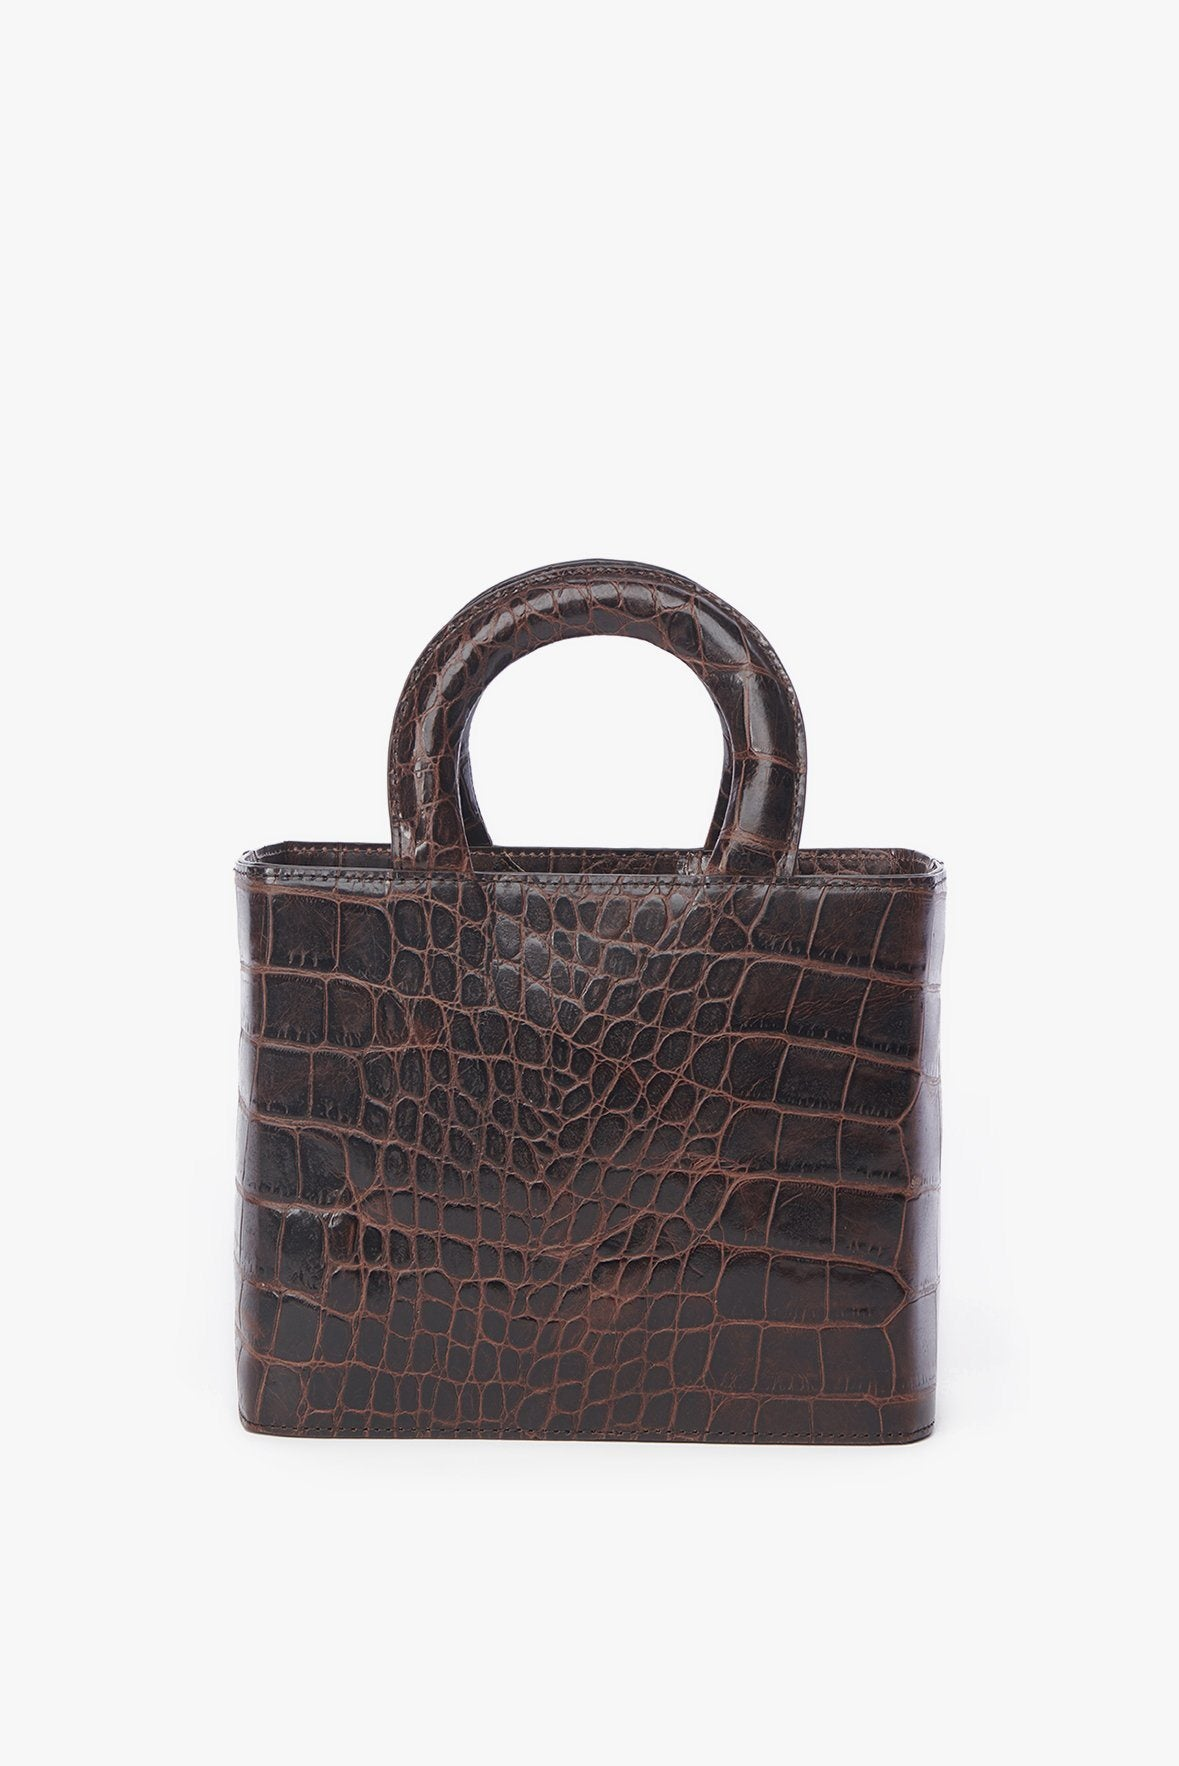 STAUD NIC BAG BROWN FAUX CROC